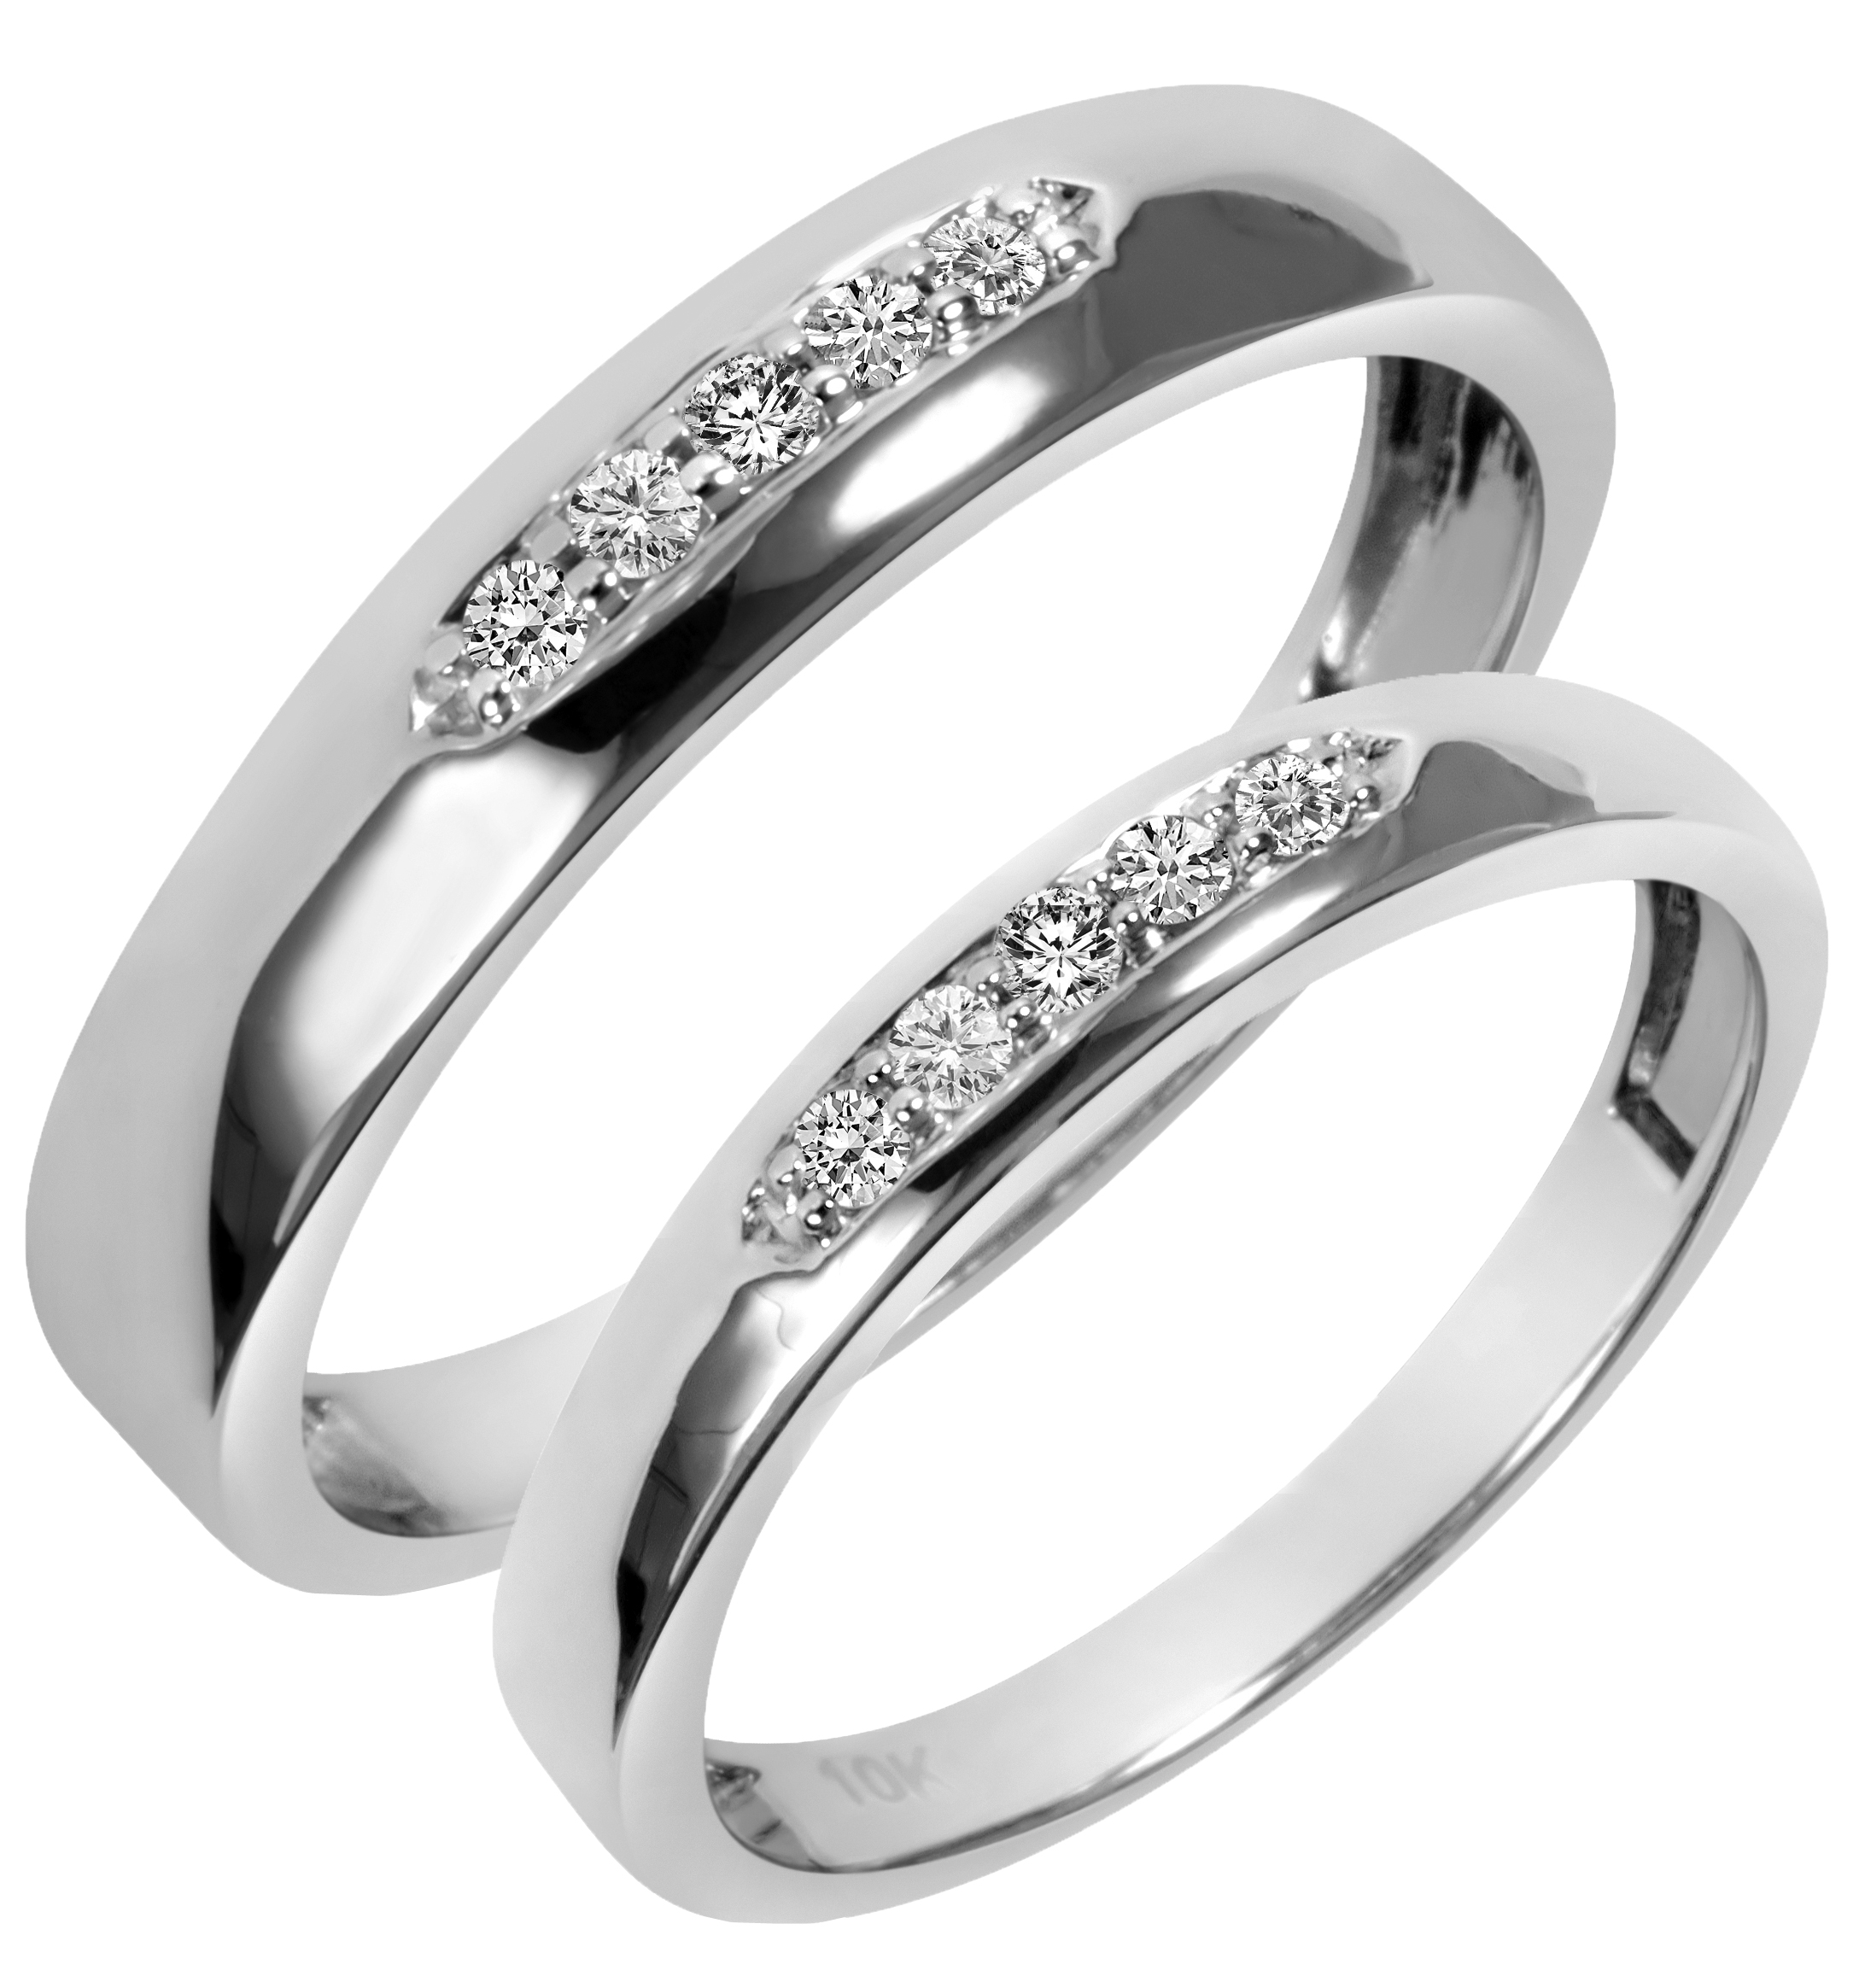 1/5 Carat T.W. Diamond His And Hers Wedding Band Set 10K White Gold